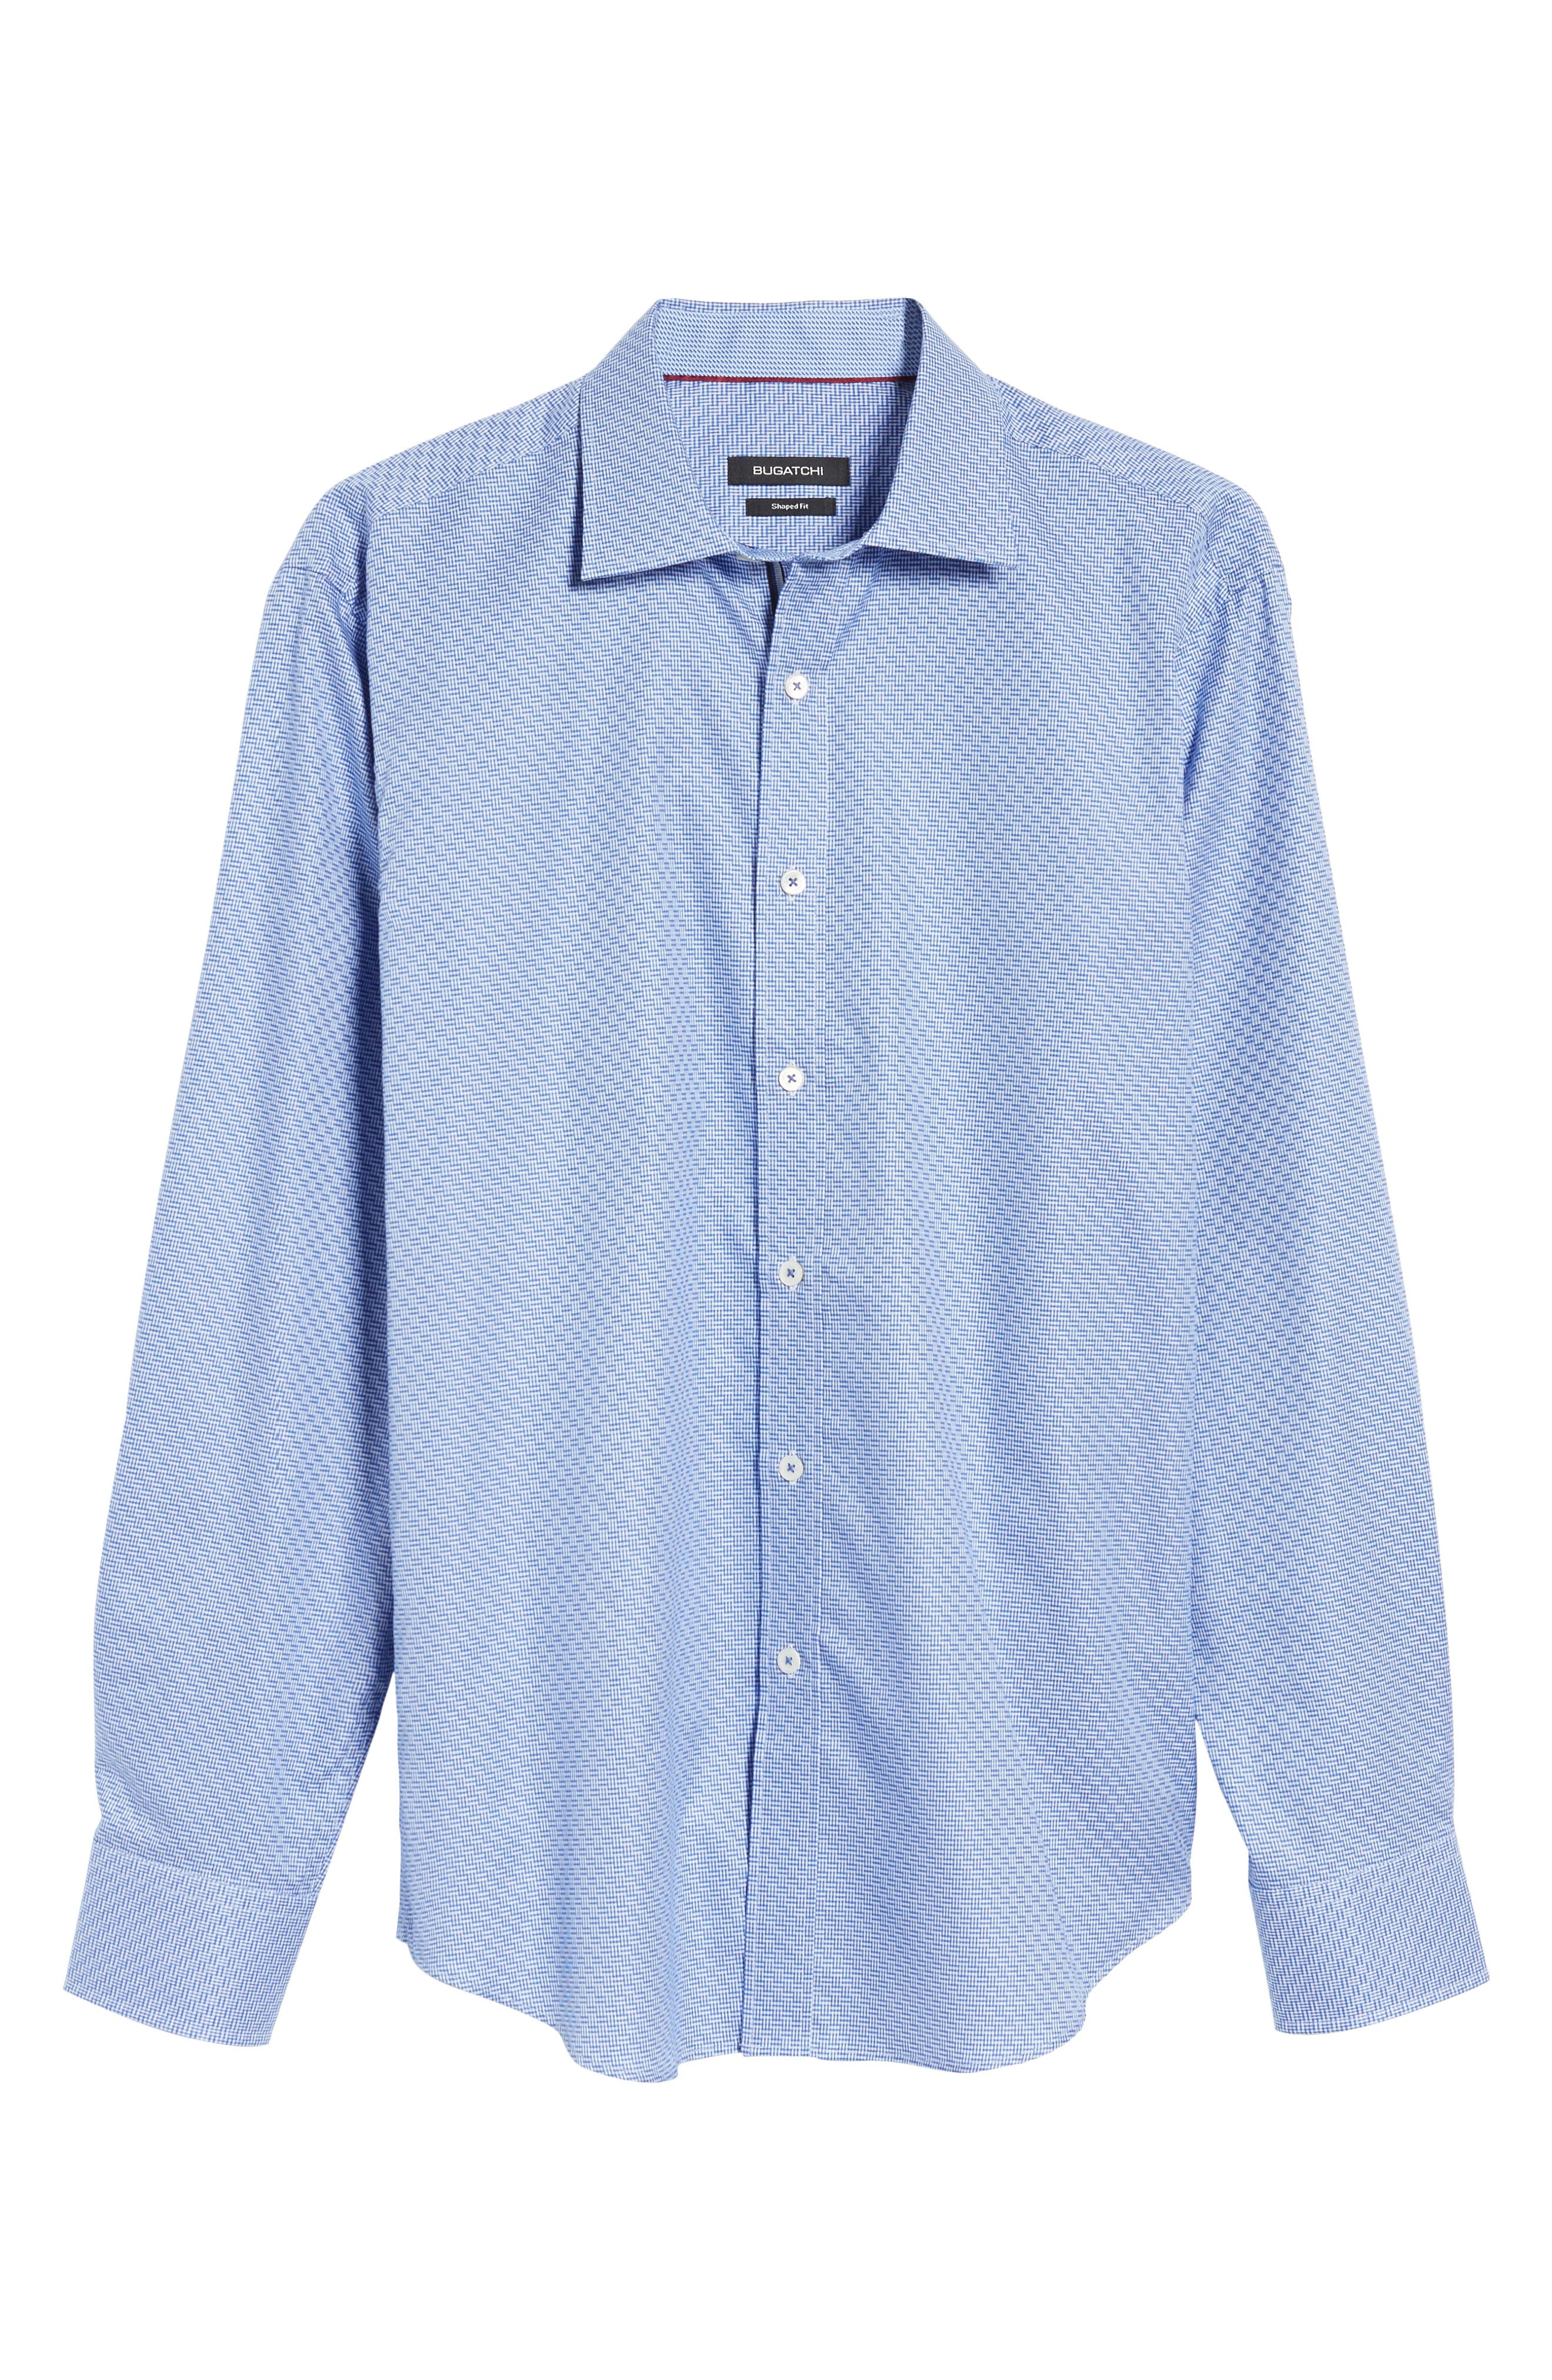 Shaped Fit Sport Shirt,                             Alternate thumbnail 6, color,                             Classic Blue